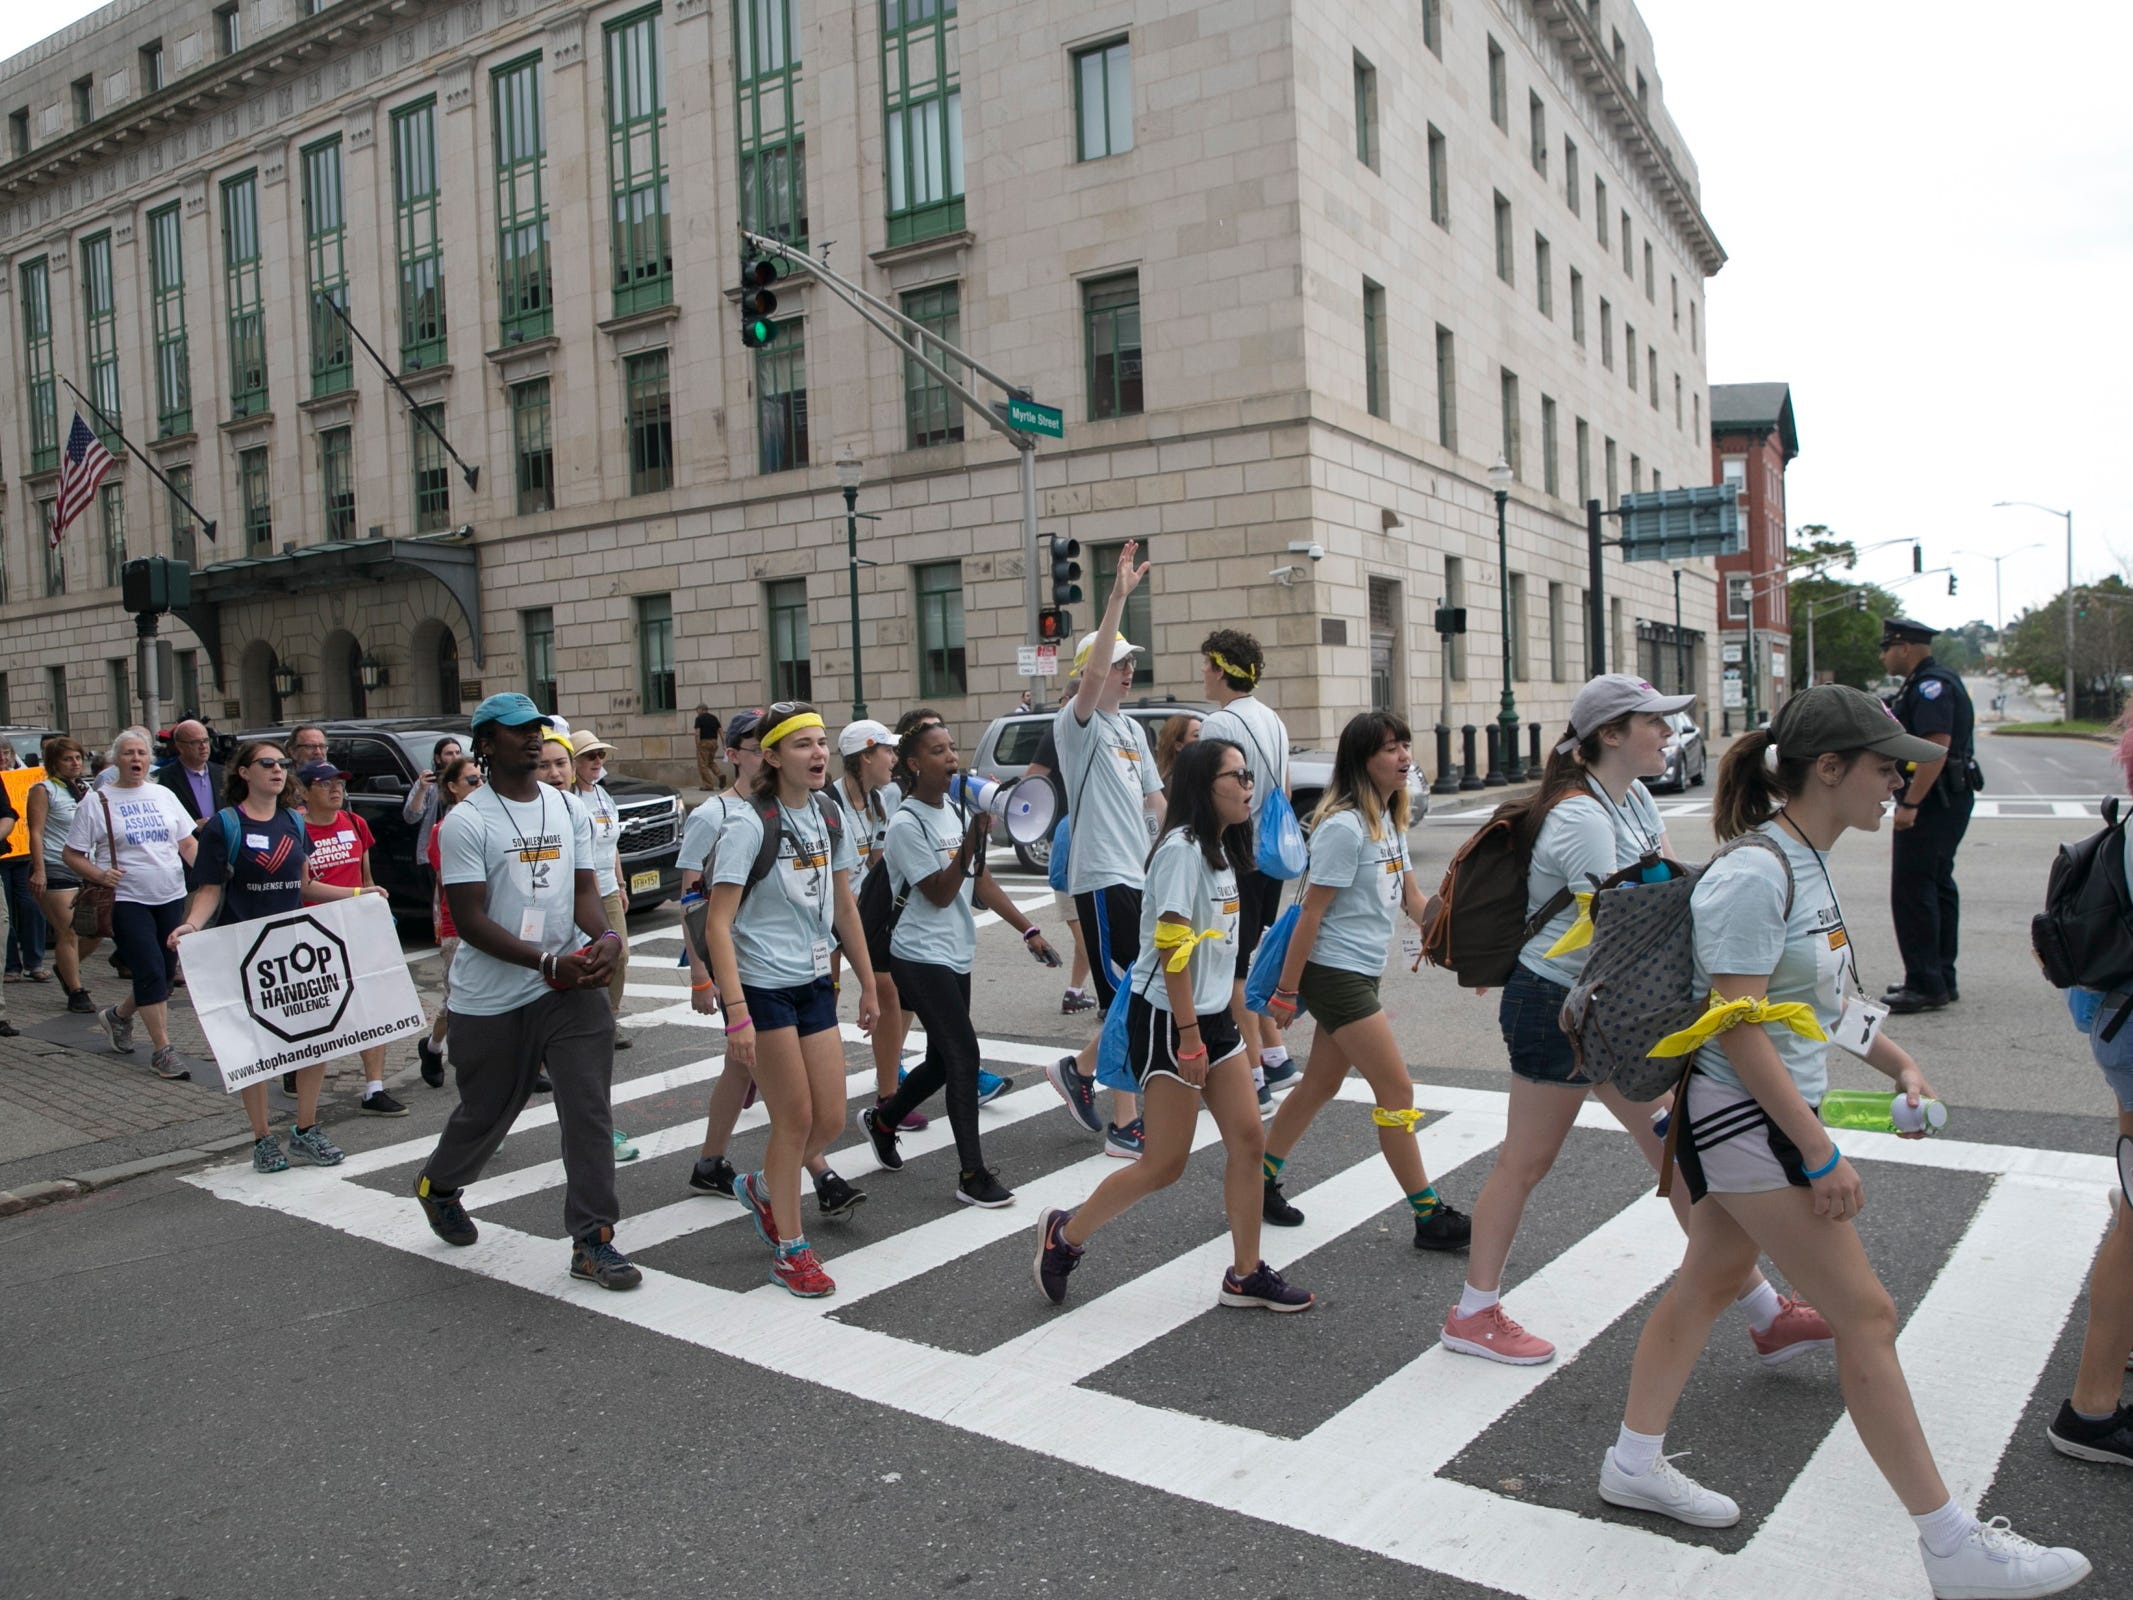 Youth activists march to protest gun violence, in Worcester, Mass. on Aug. 2018.